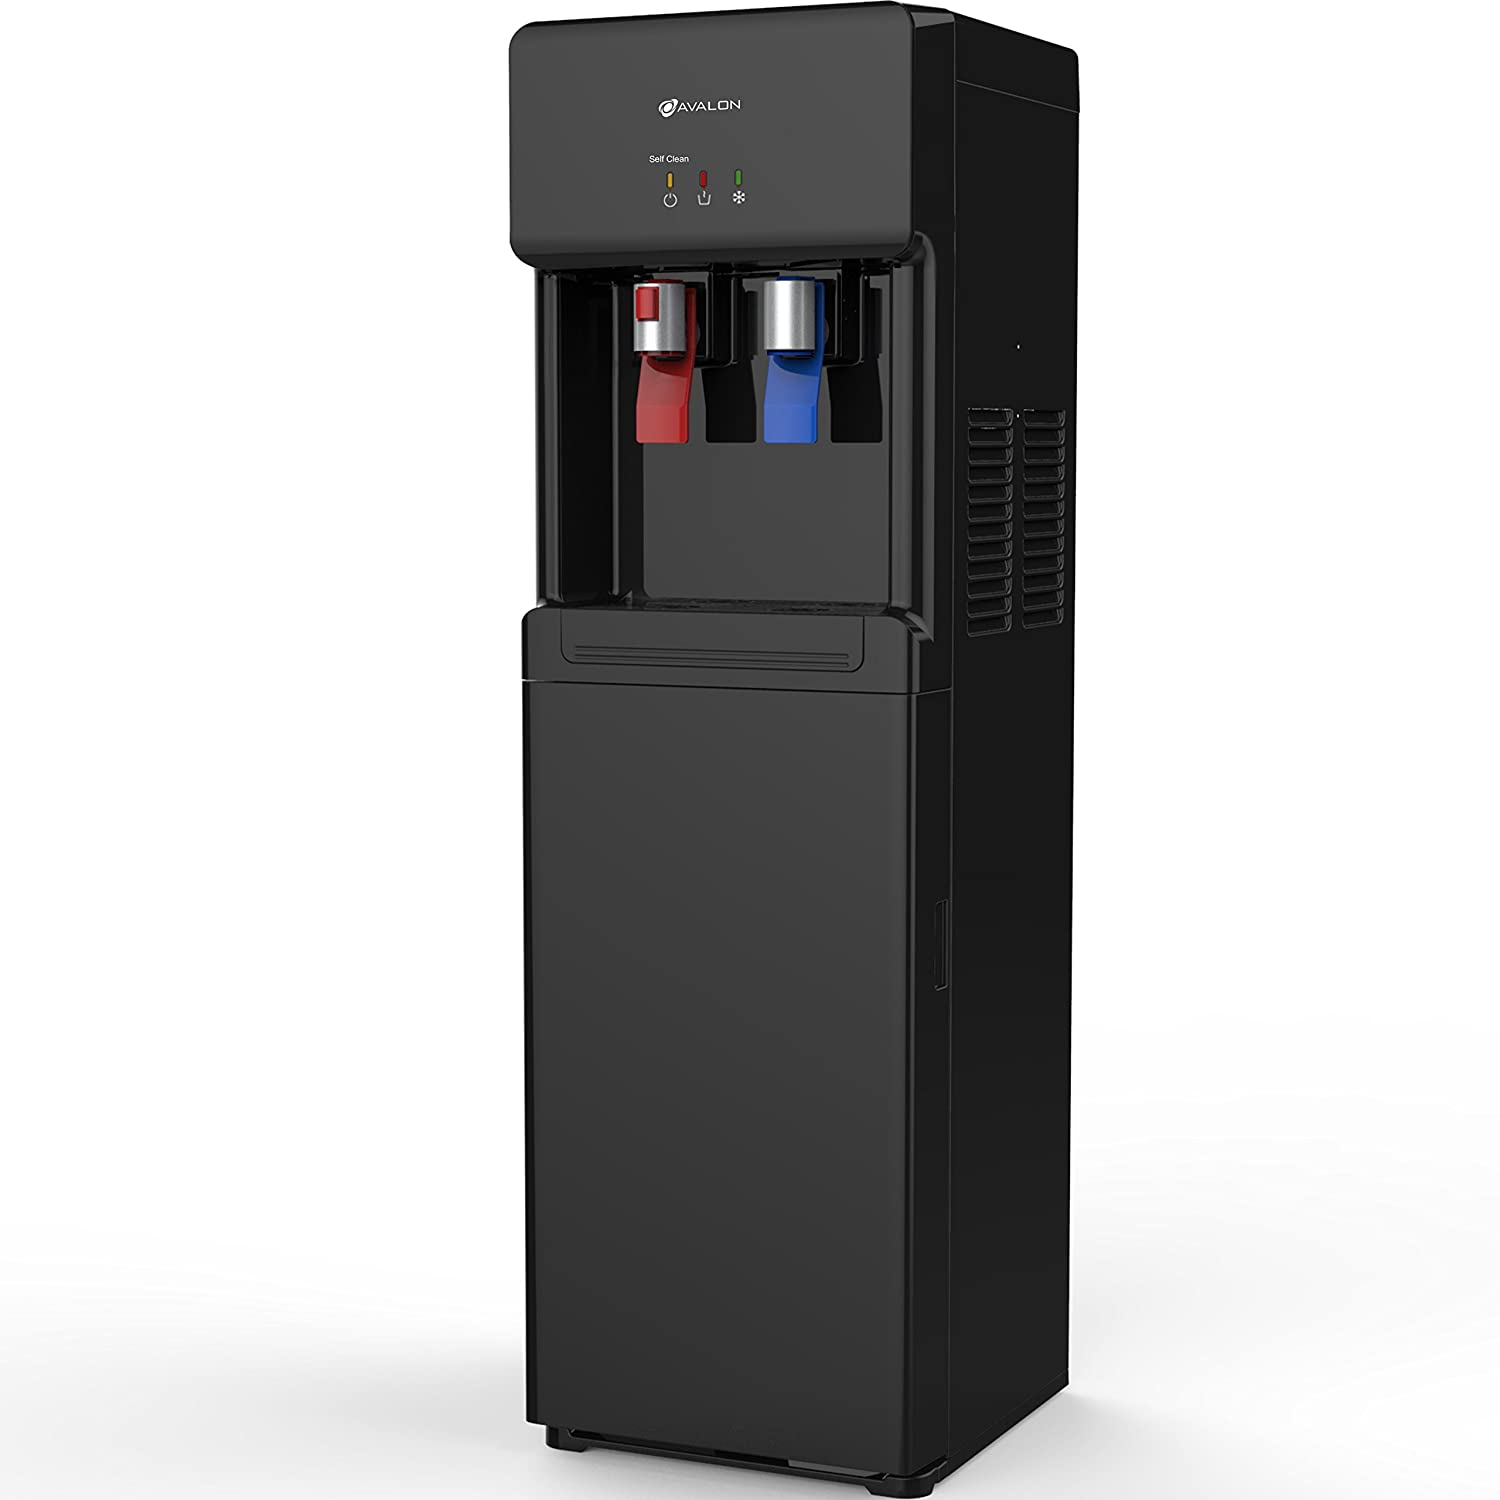 Avalon A6BLWTRCLRBLK Bottom Loading Cooler Dispenser-Hot & Cold Water, Child Safety Lock, Innovative Slim Design, Holds 3 or 5 Gallon Bottles-UL/Energy Star Approved-Black